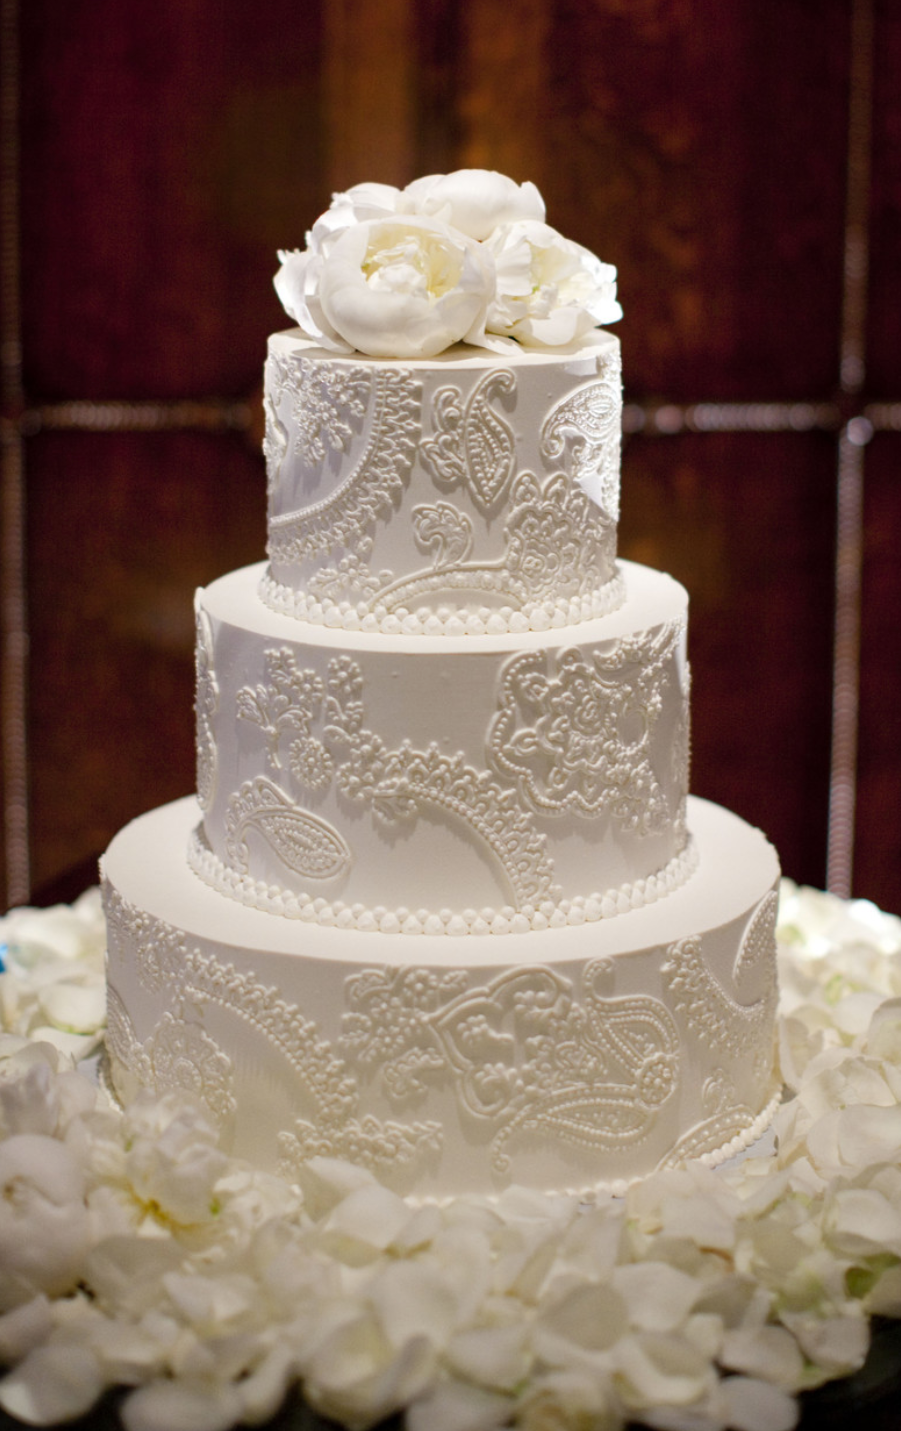 Wedding Cakes Too Good to Eat Badal Patel